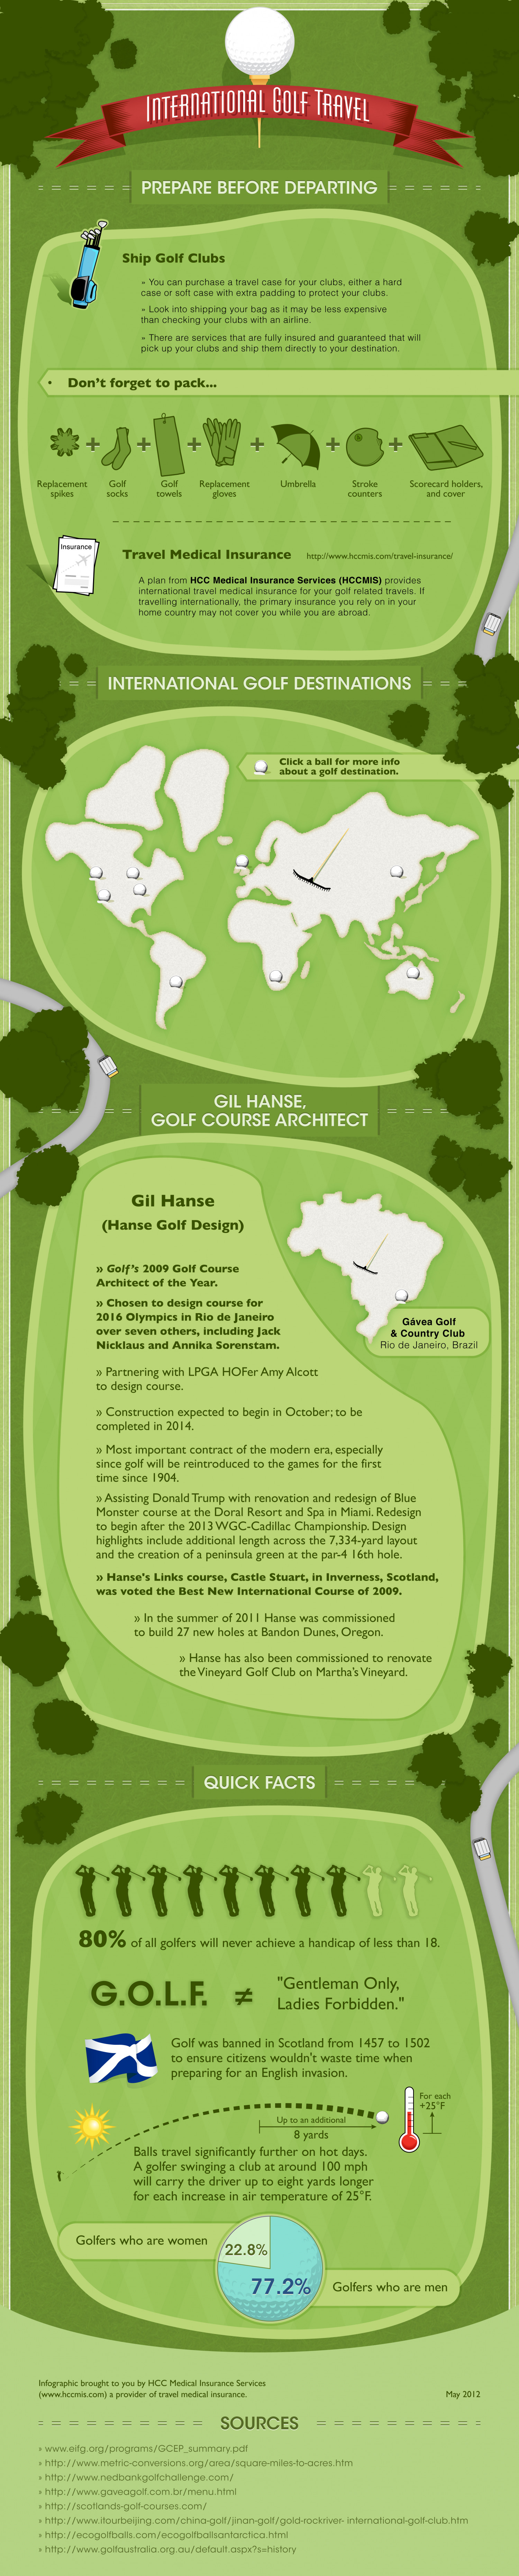 International Golf: Going Beyond Par Infographic